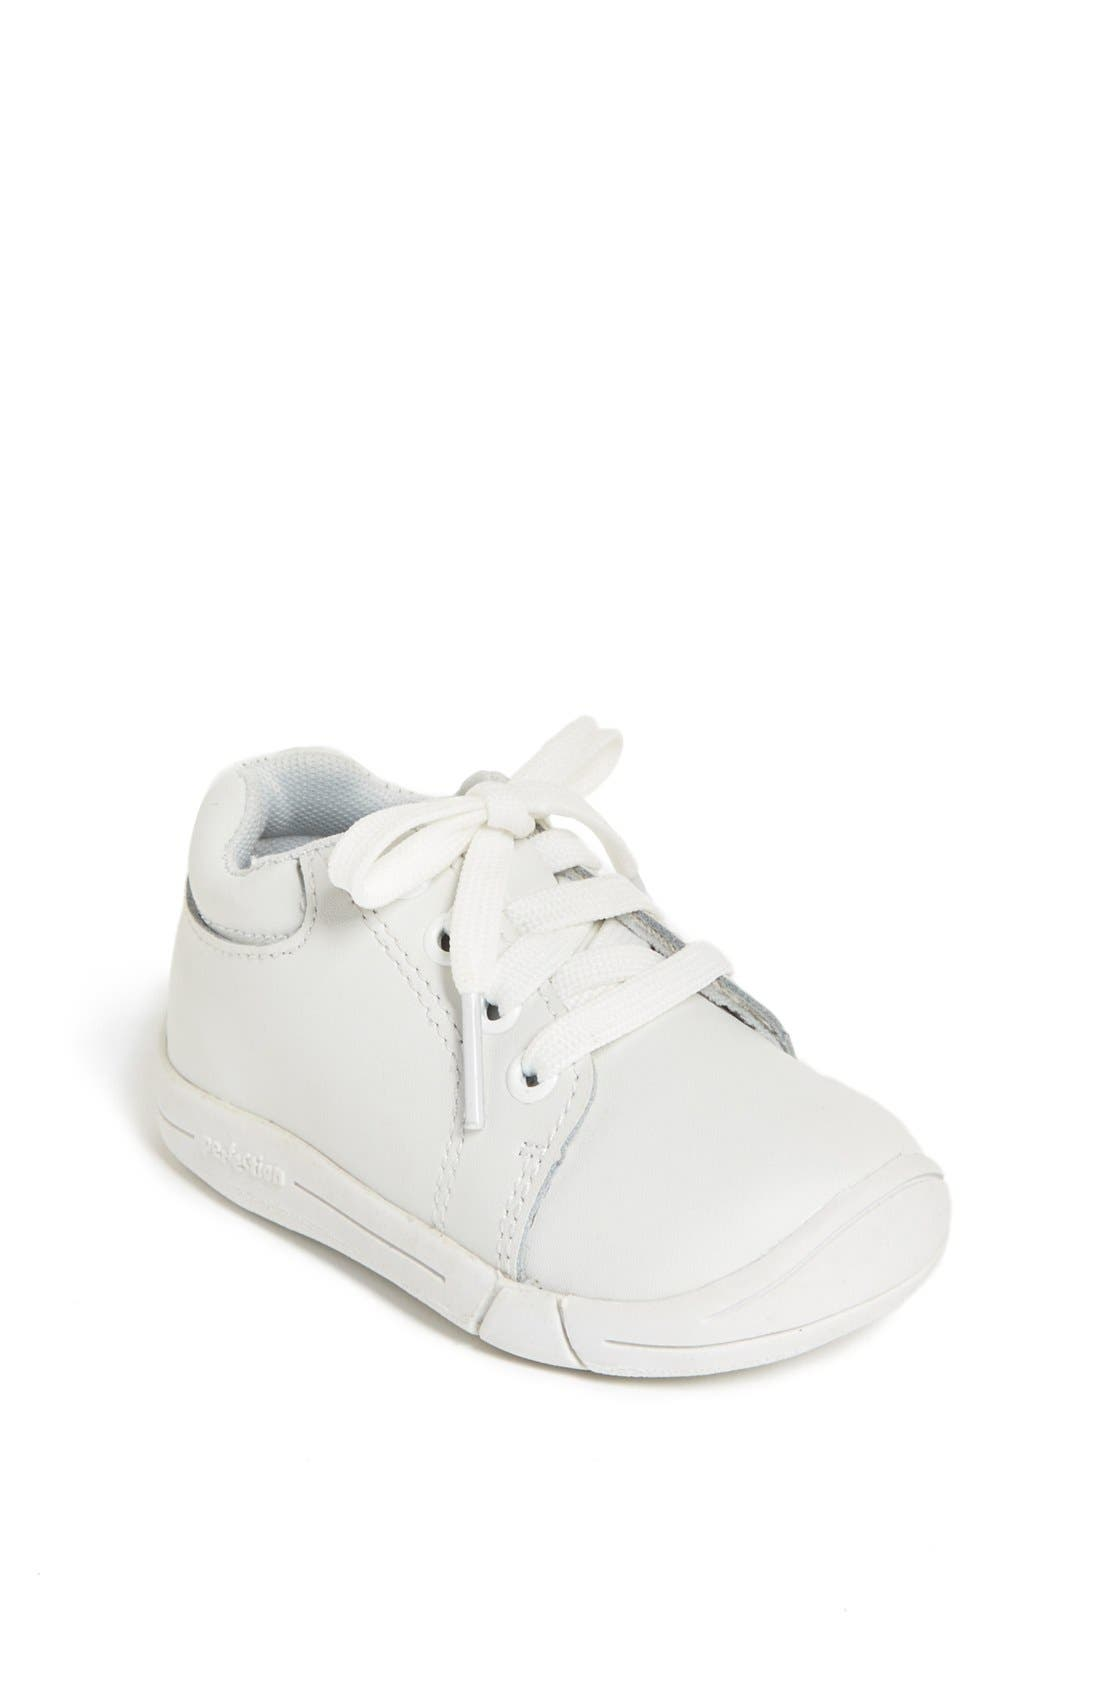 Alternate Image 1 Selected - Jumping Jacks 'Perfection' Sneaker (Baby, Walker & Toddler)